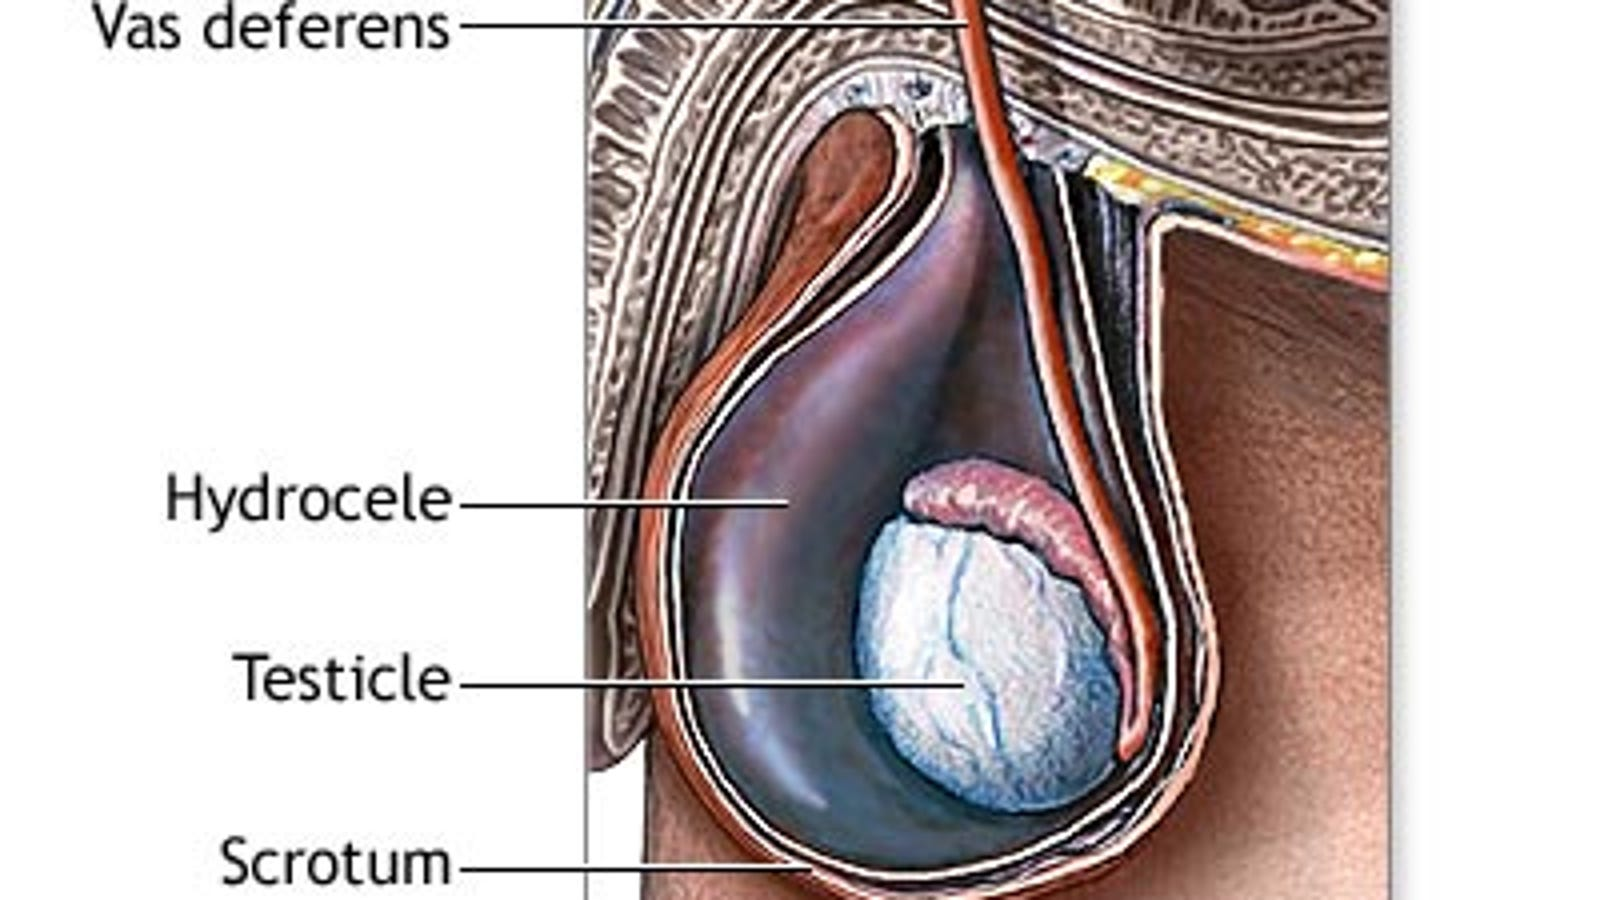 The Hidden Menace That Is The Scrotal Hydrocele